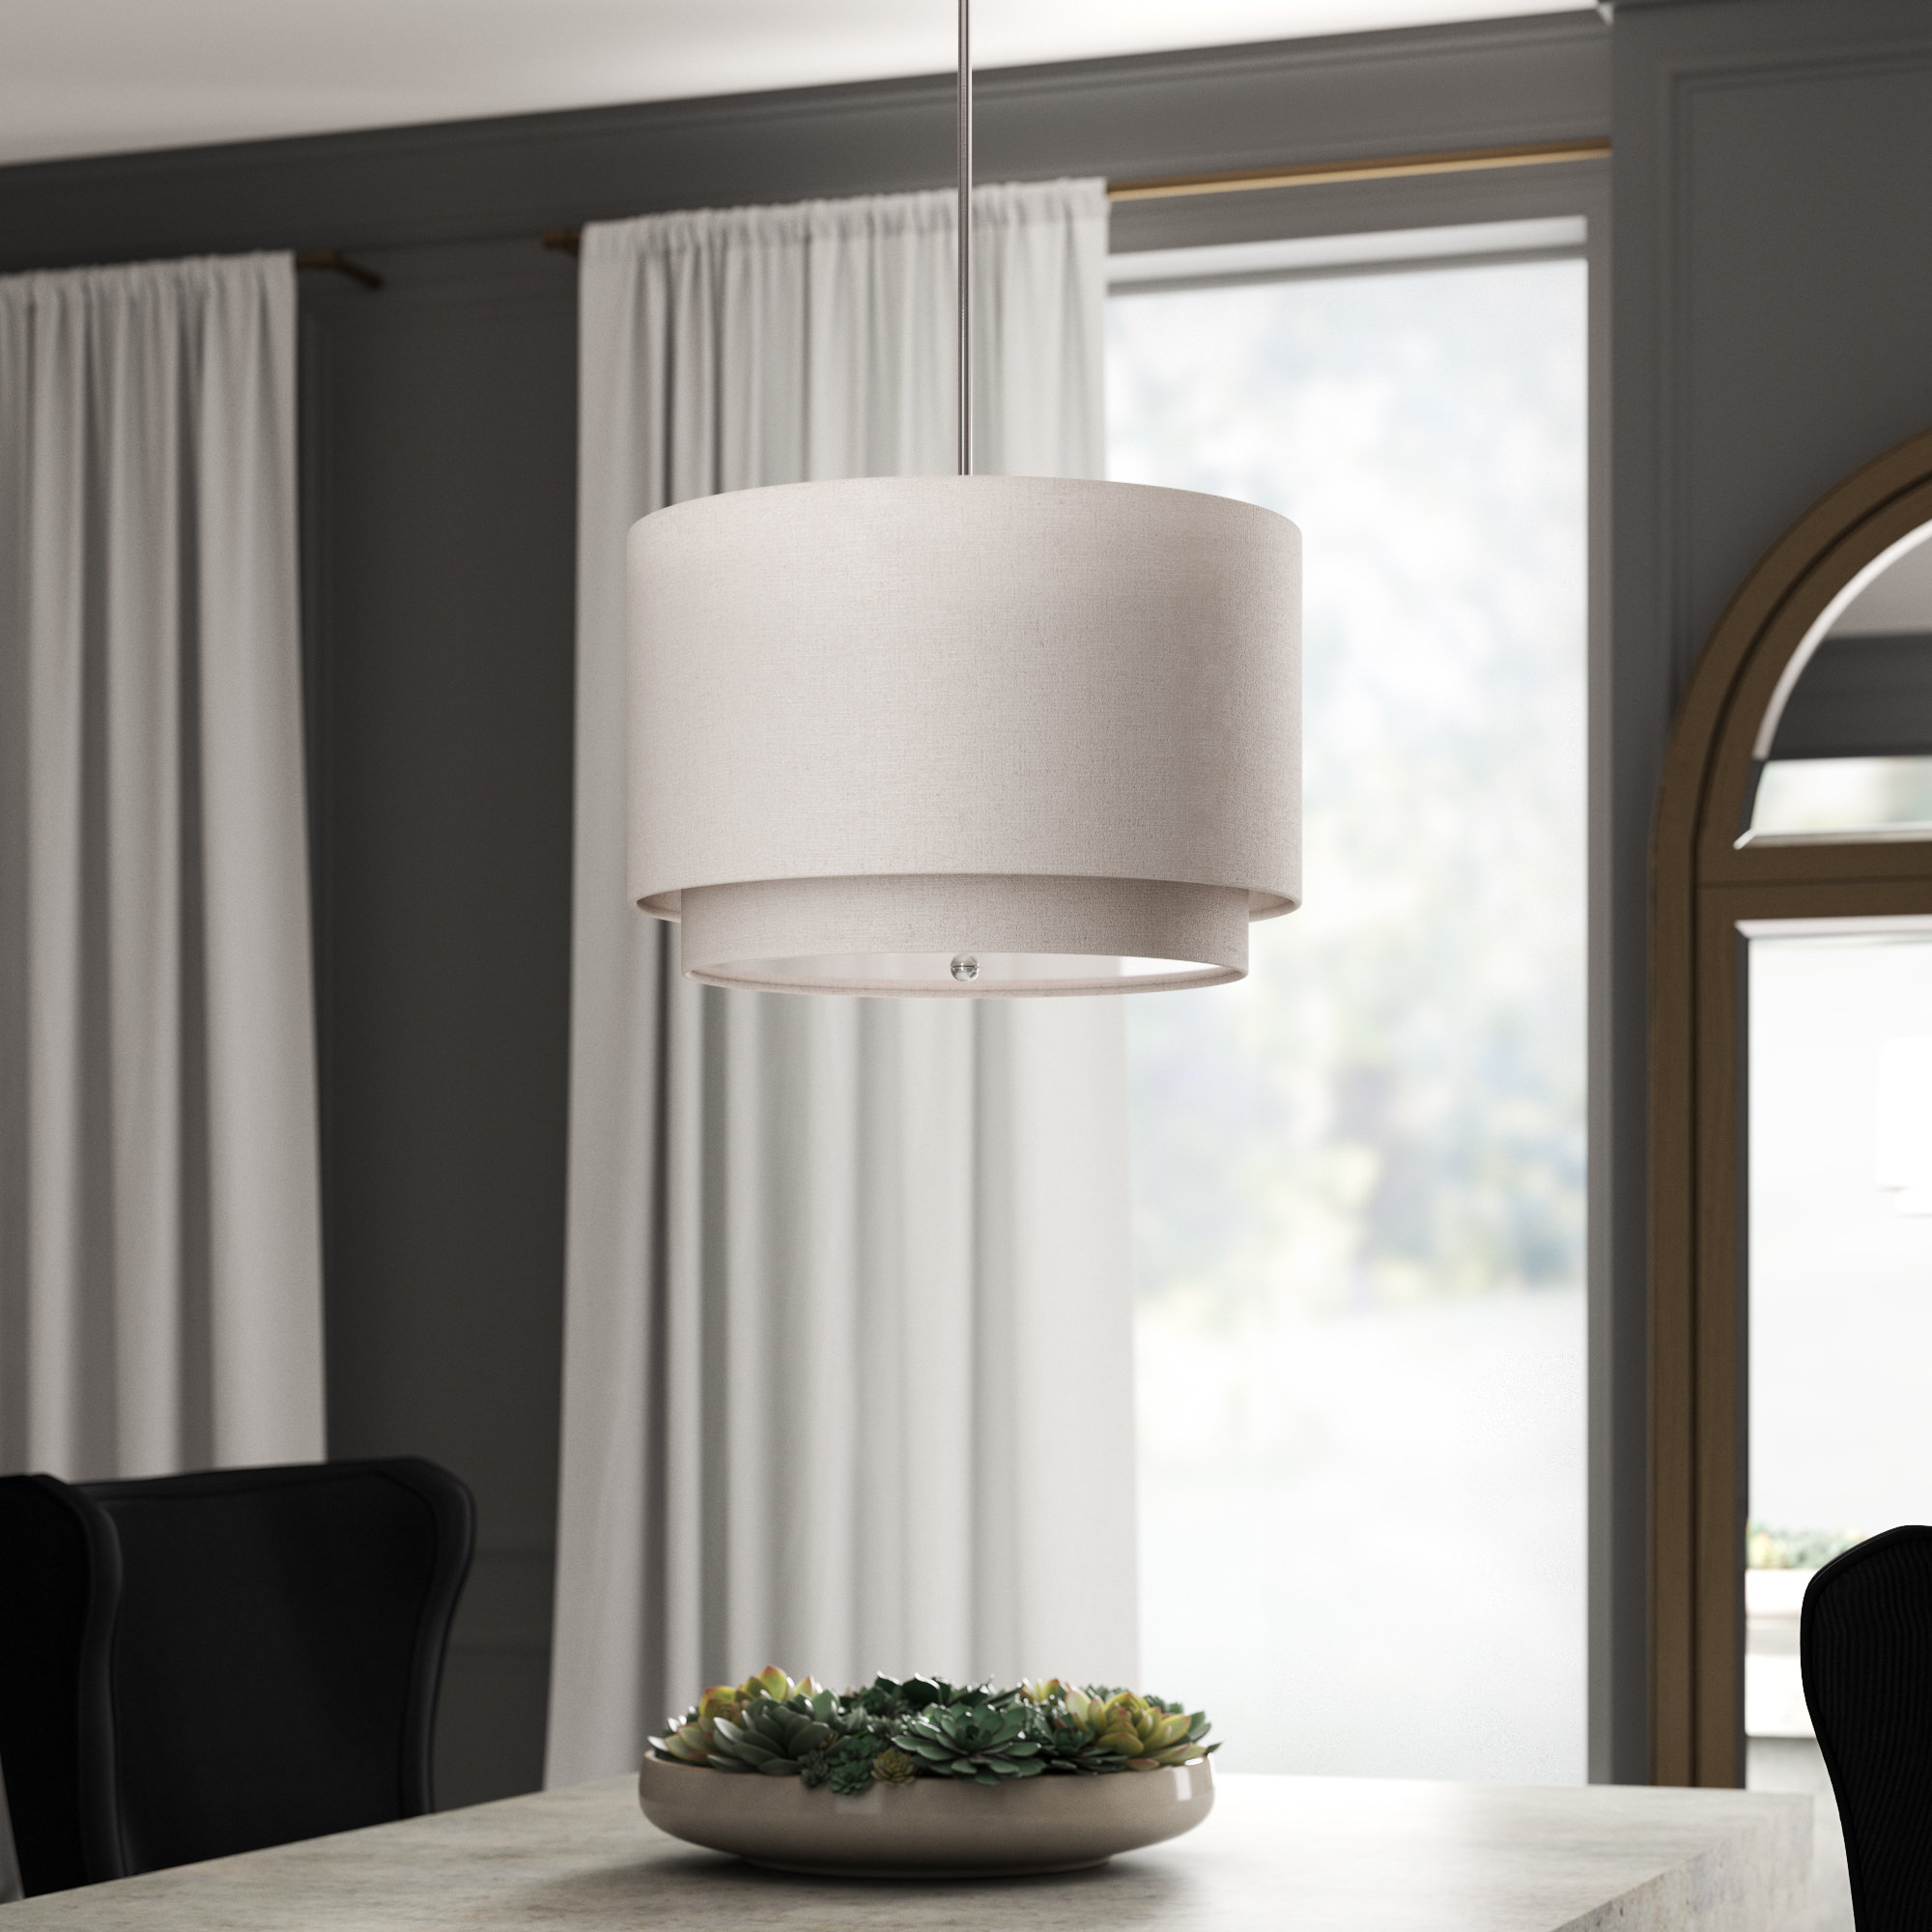 Friedland 3 Light Drum Tiered Pendant For Famous Radtke 3 Light Single Drum Pendants (View 6 of 25)